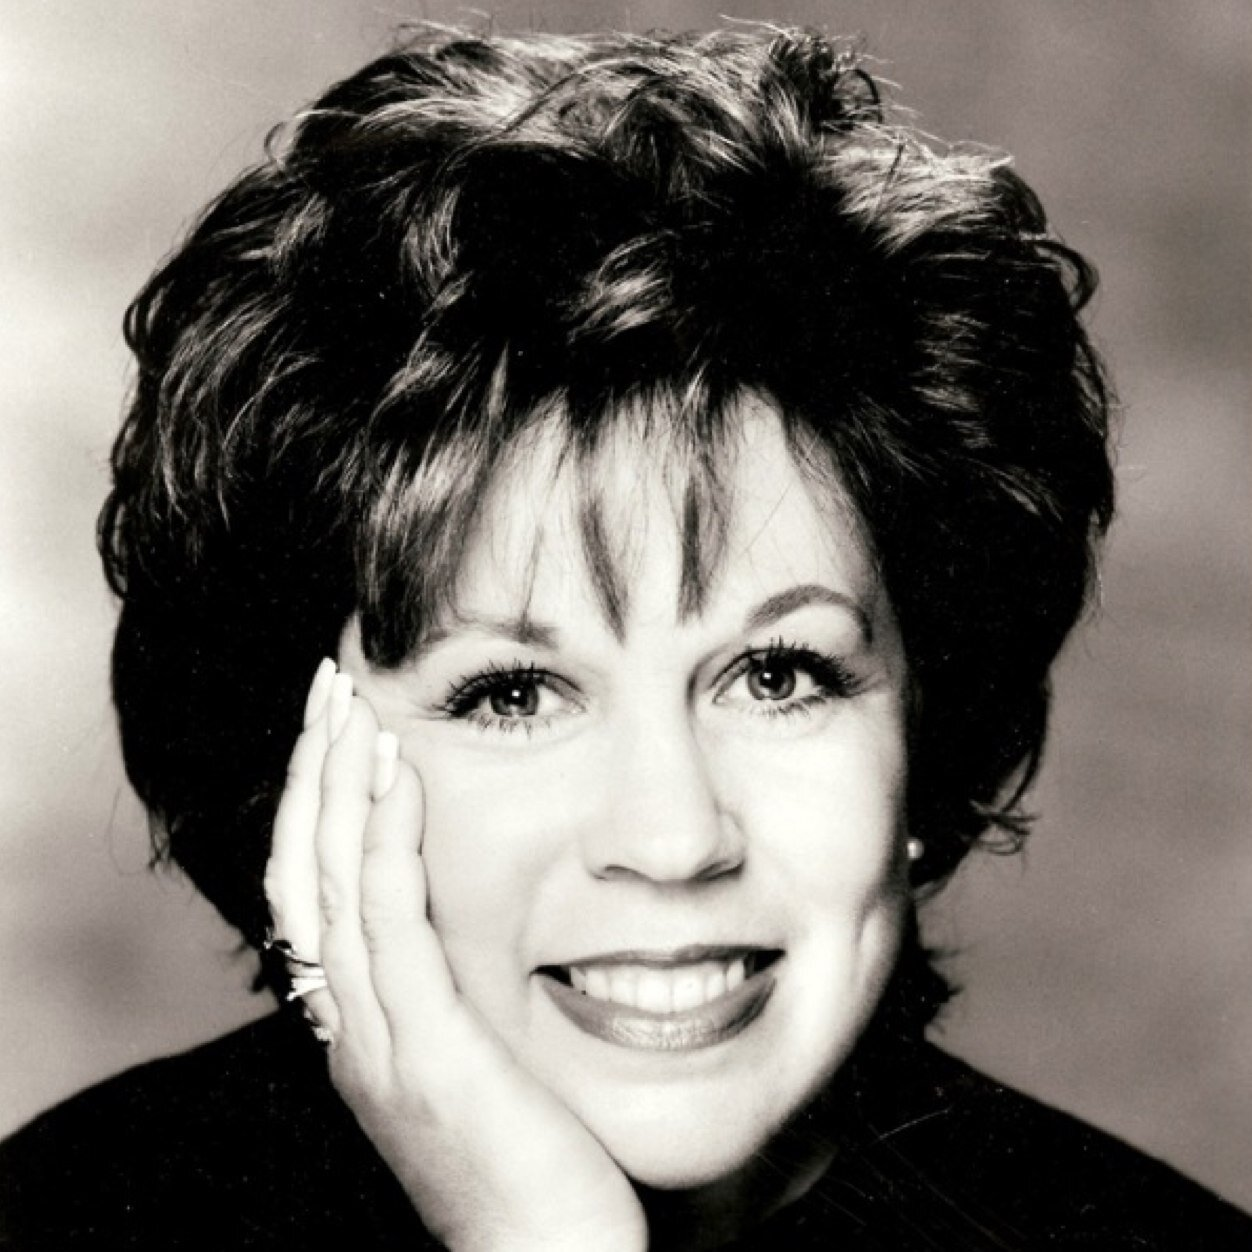 vicki lawrence fan vickifan21 tweets 34 following 14 followers 18    Vicki Lawrence